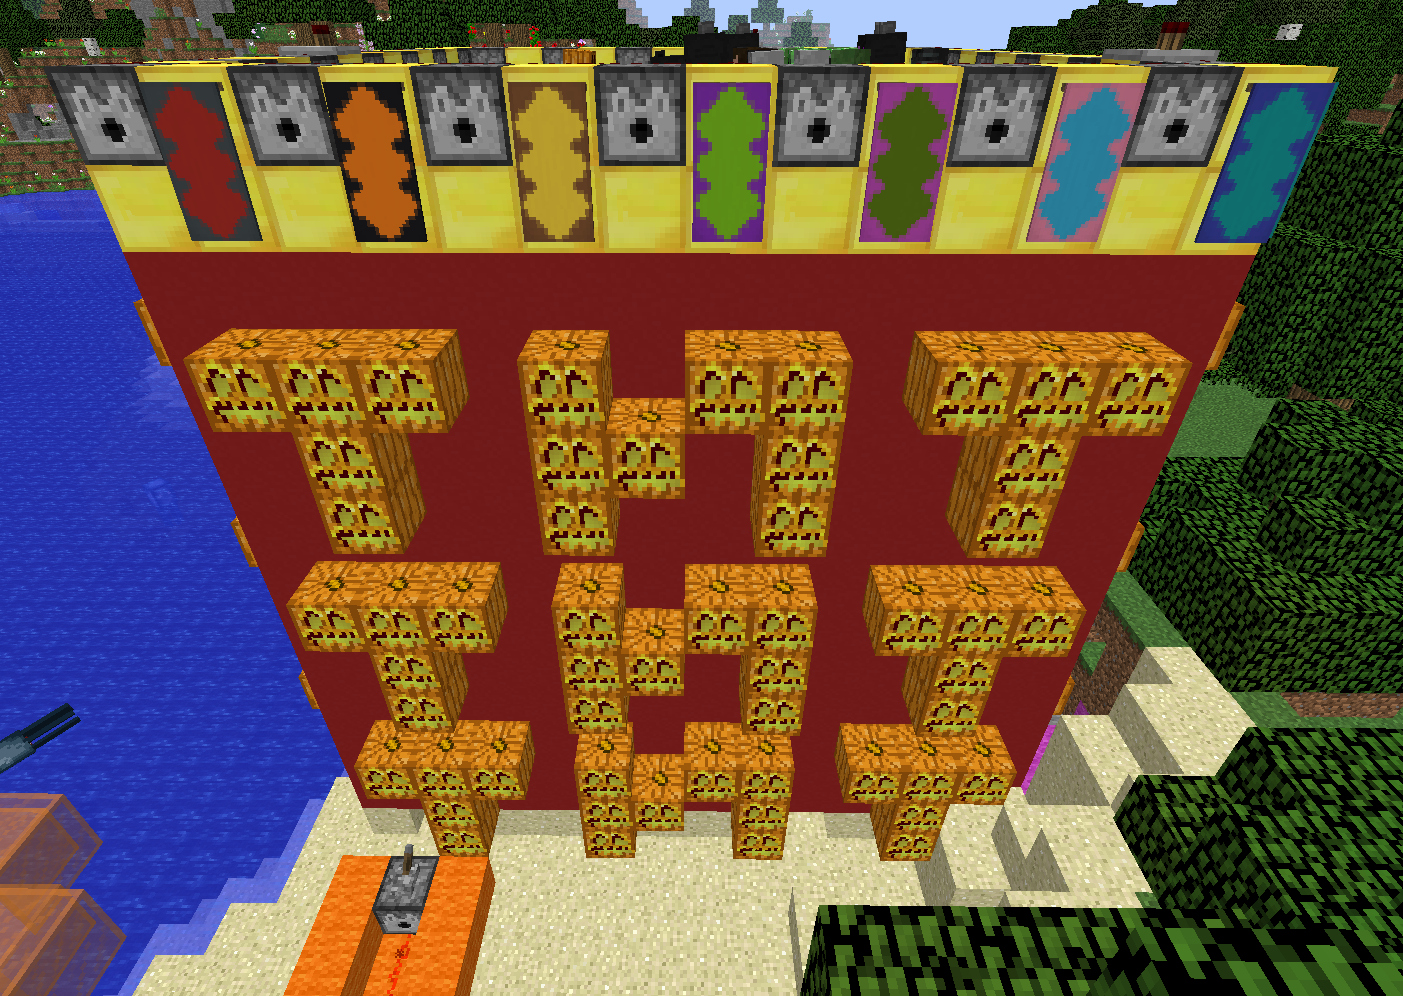 TNT Castle constructed in Minecraft, Text: Words TNT TNT TNT